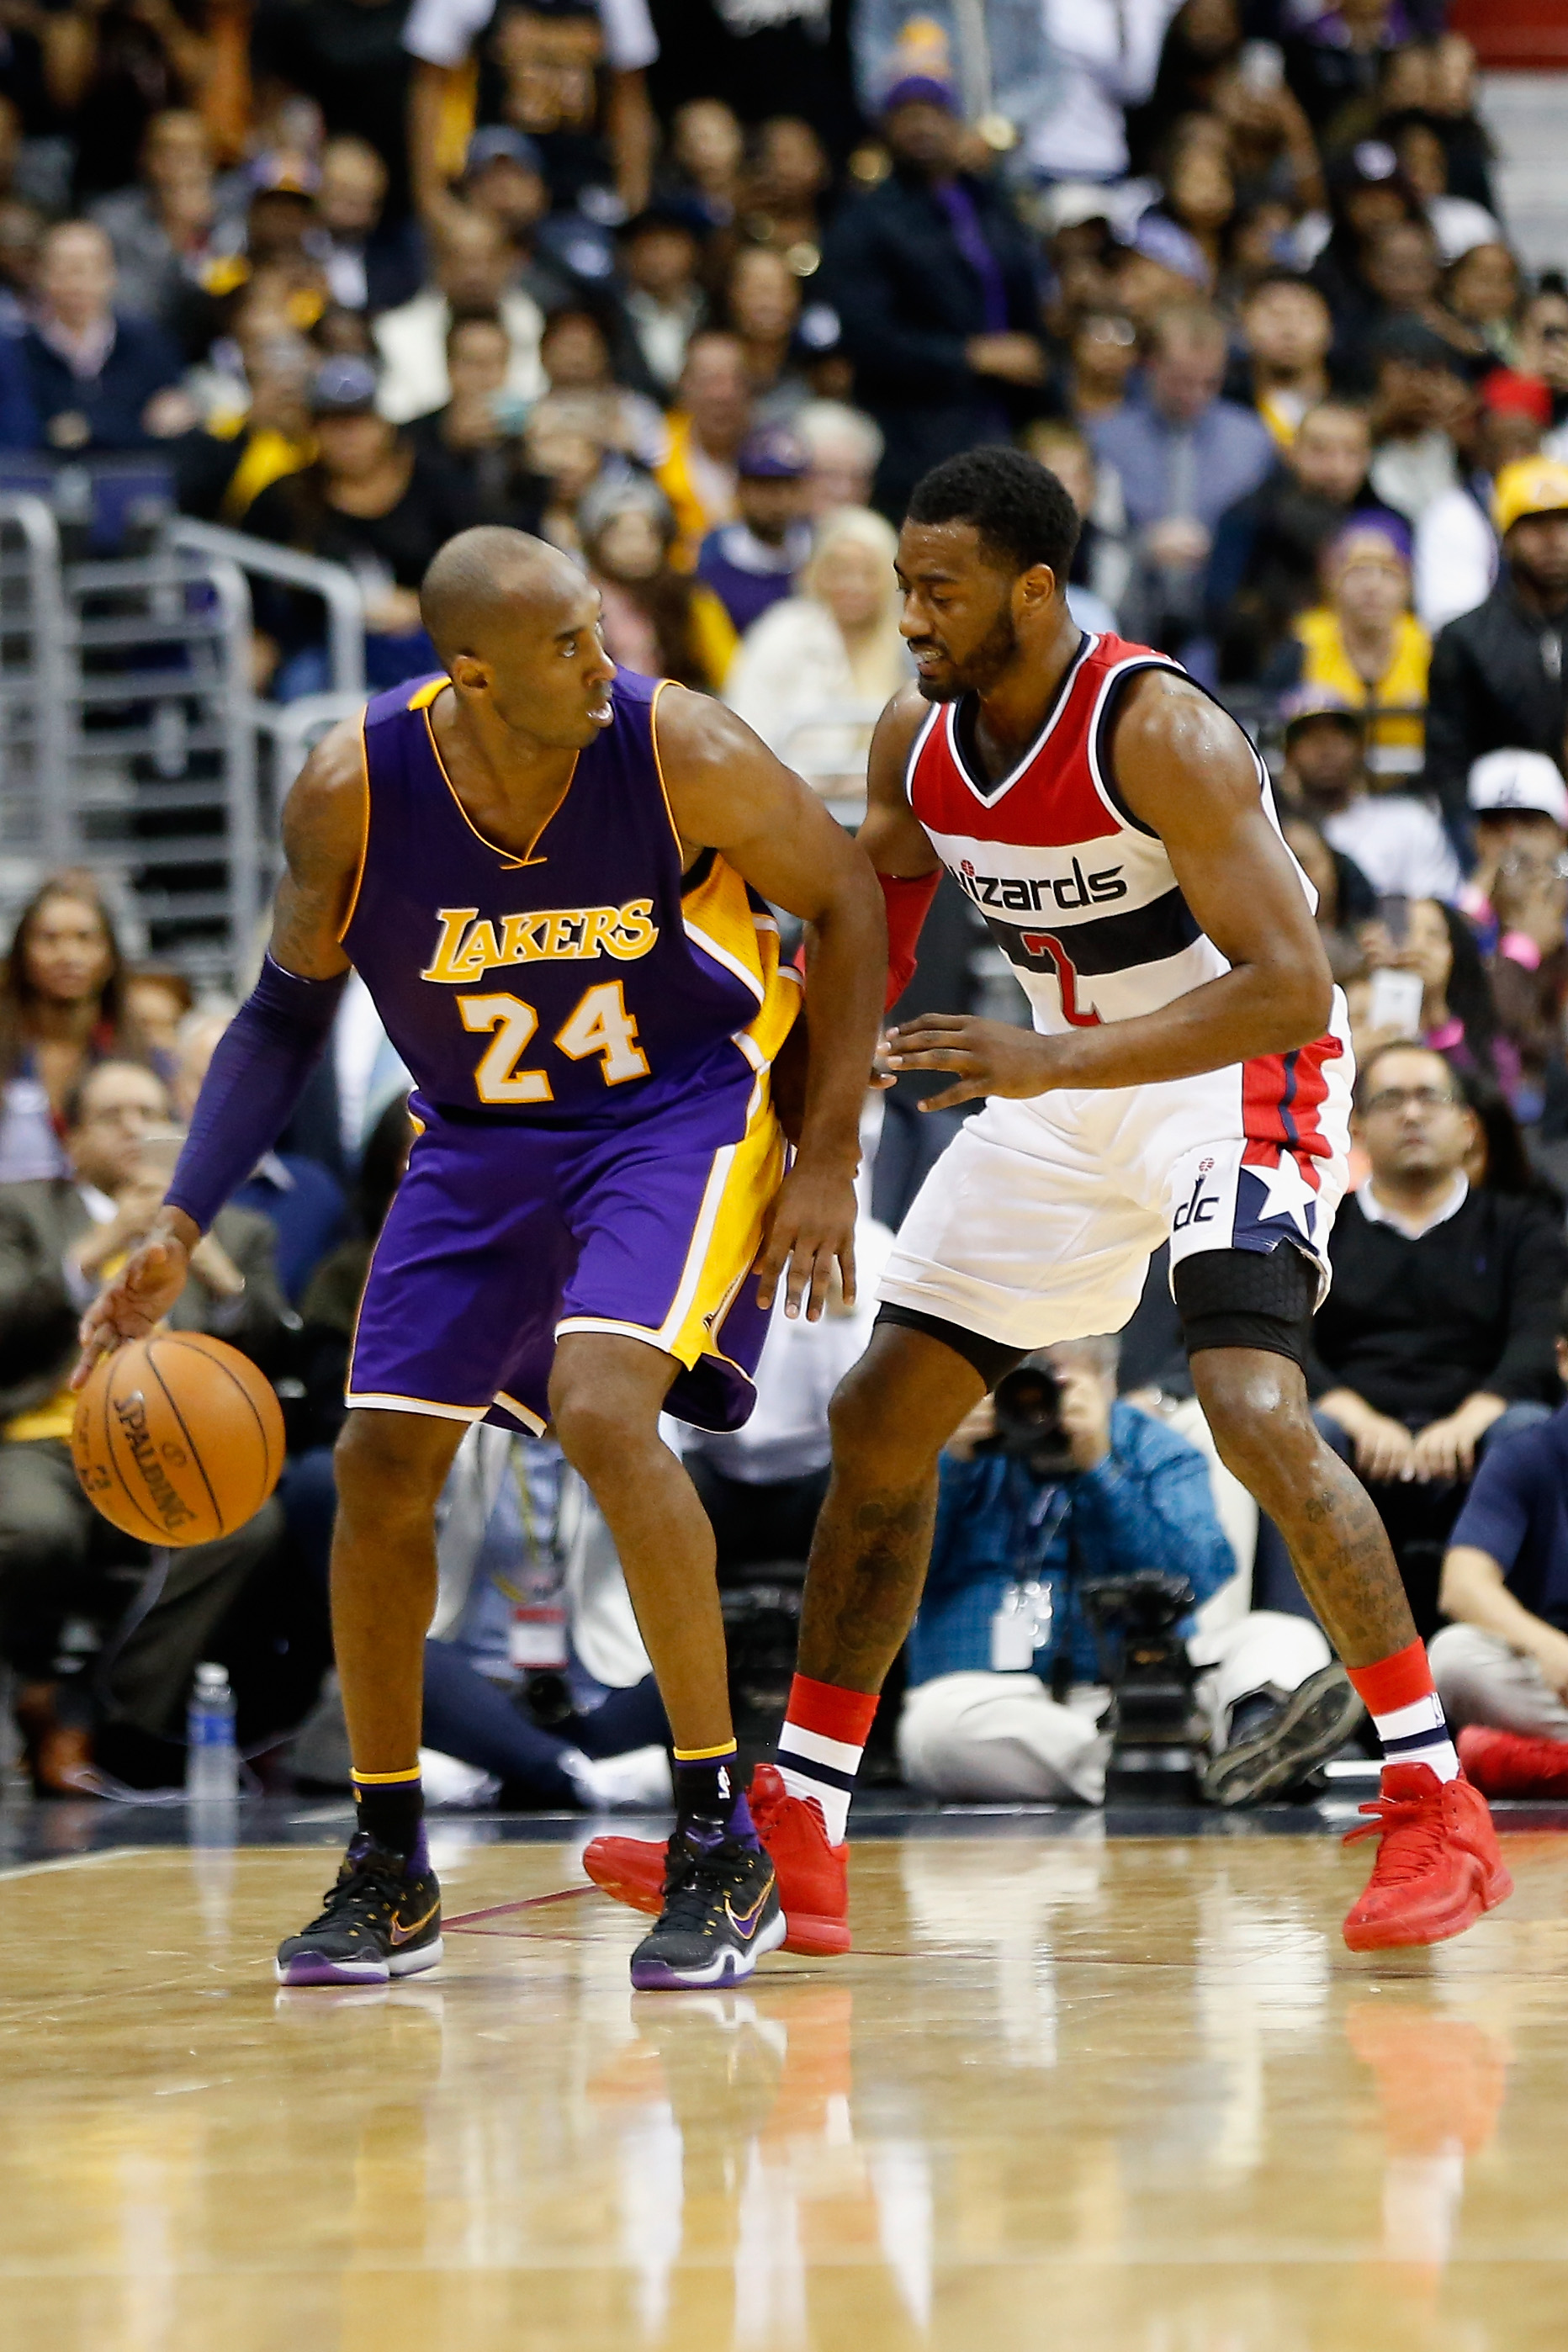 WASHINGTON, DC - DECEMBER 02:  Kobe Bryant #24 of the Los Angeles Lakers dribbles the ball against John Wall #2 of the Washington Wizards in the second half of the Lakers 108-104 win at Verizon Center on December 2, 2015 in Washington, DC.  (Photo by Rob